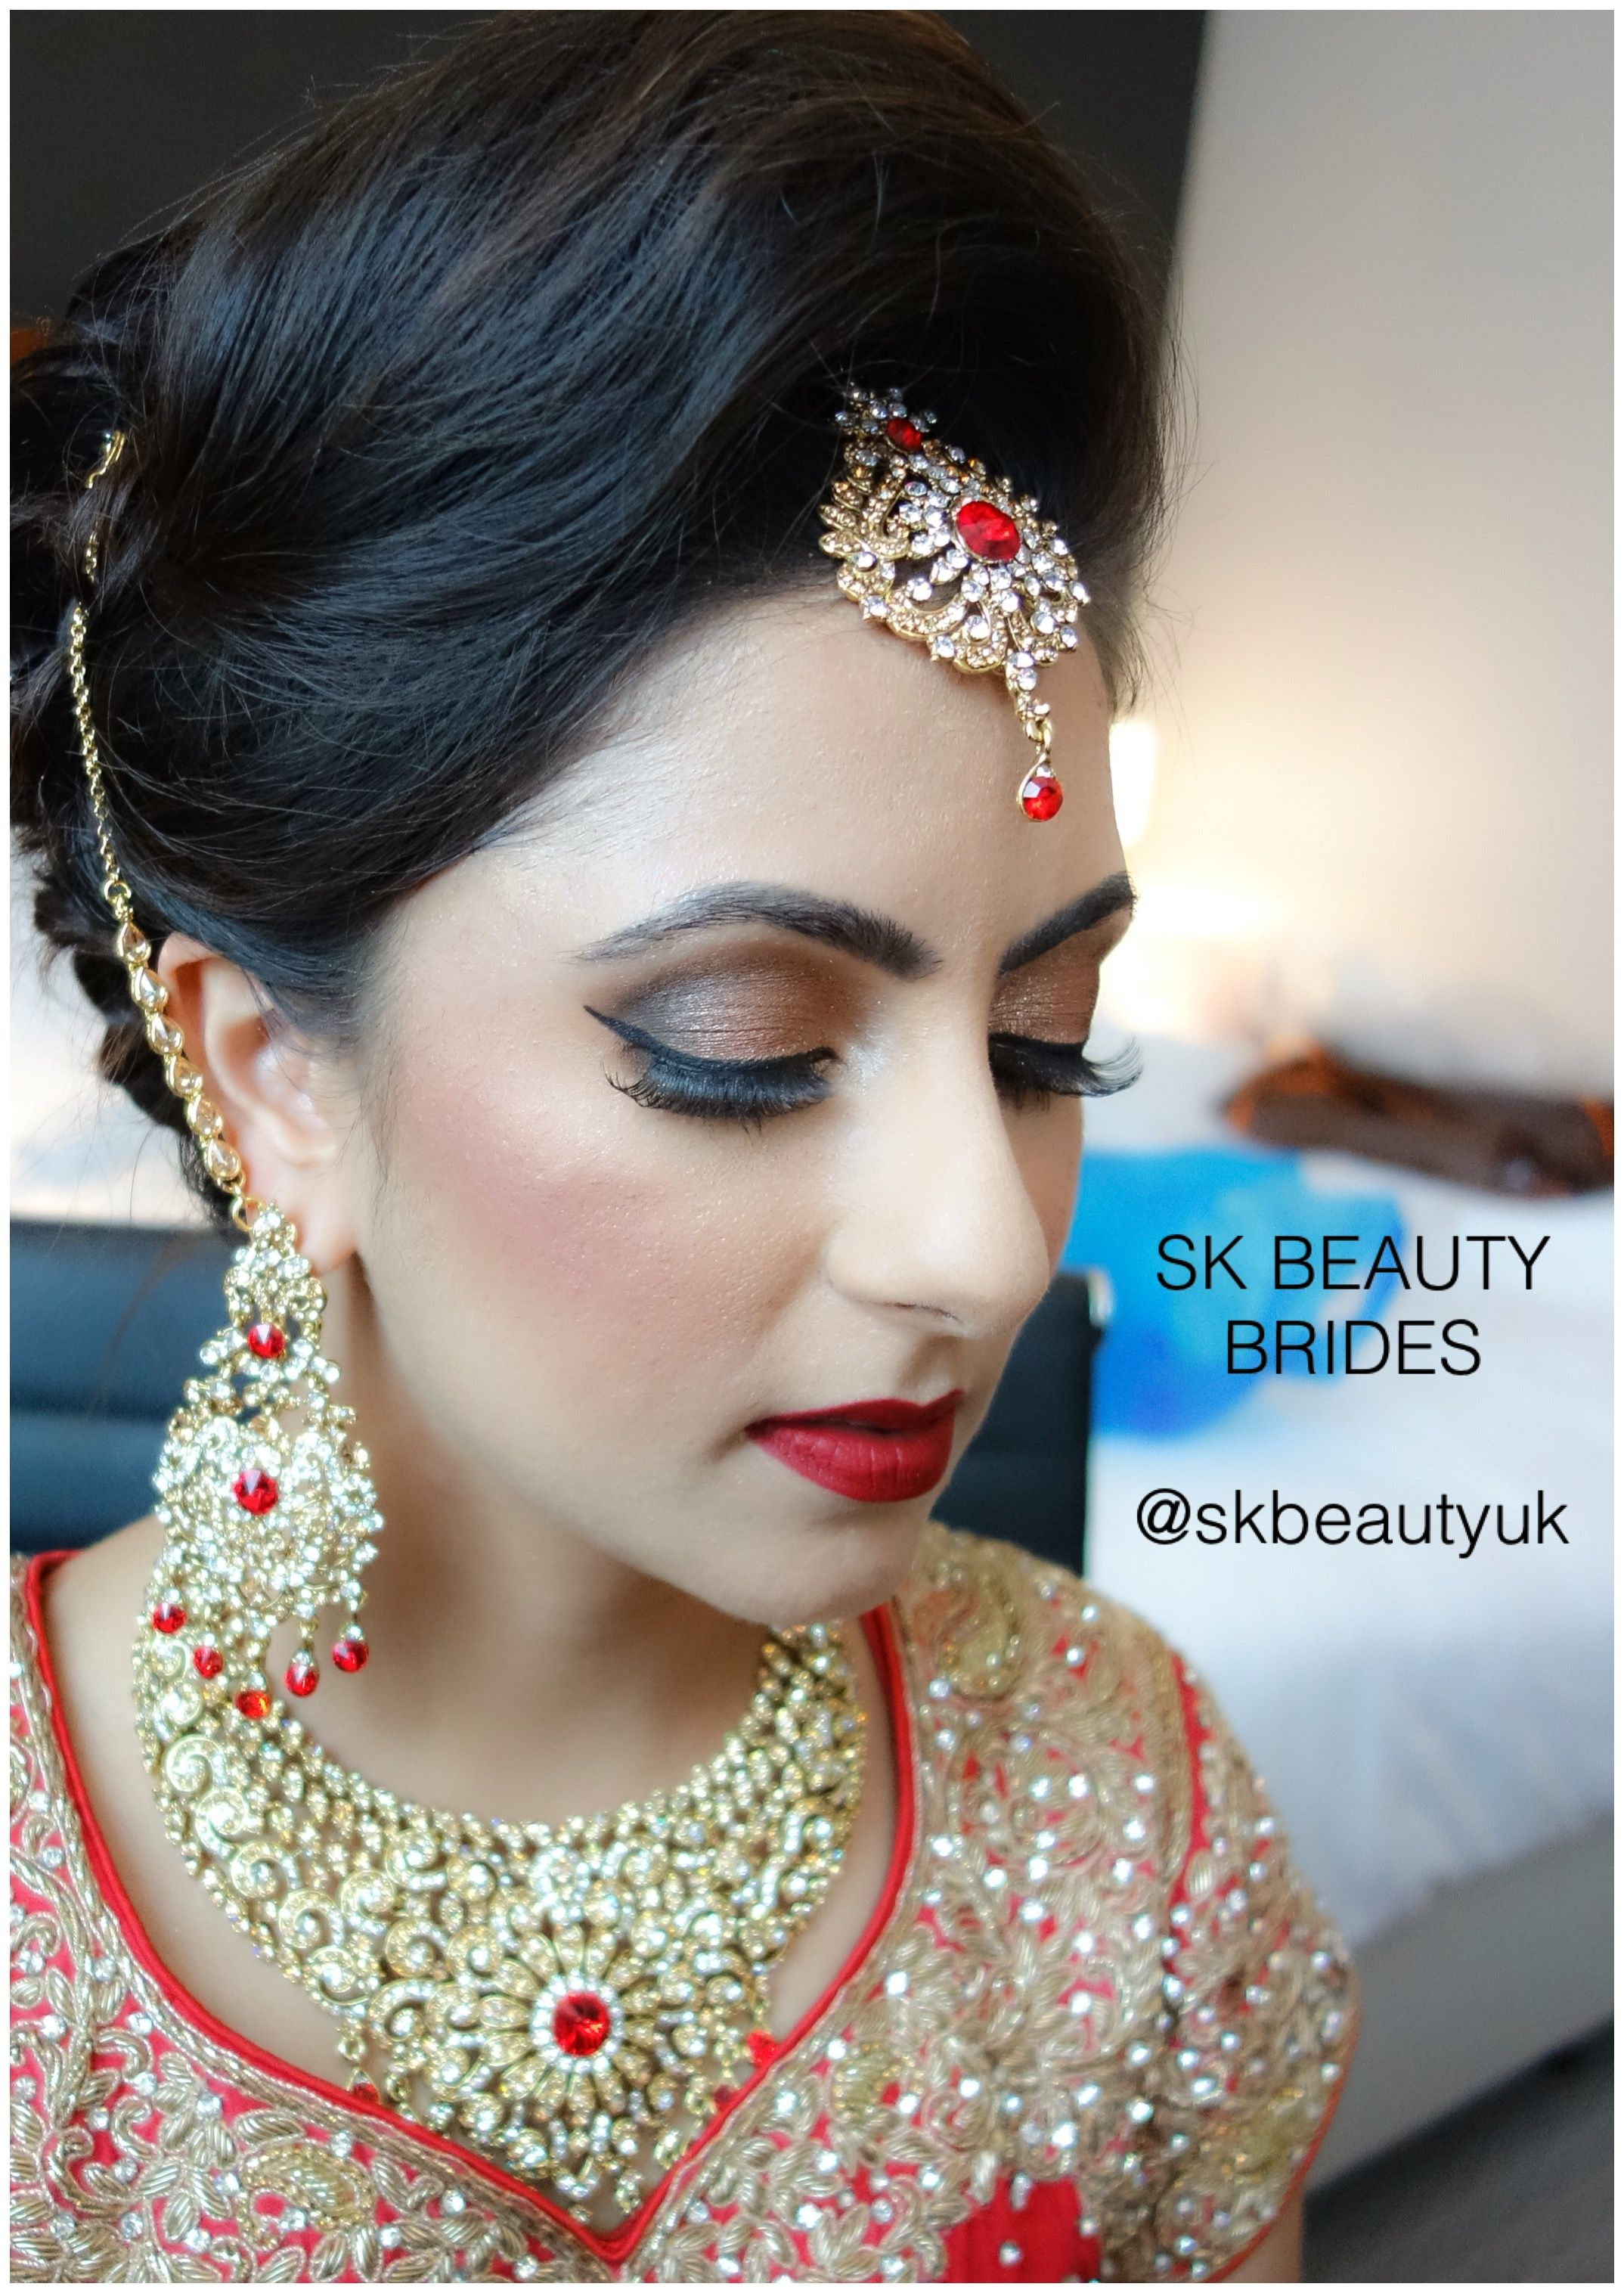 Pin by sk beauty on sk beauty brides pinterest